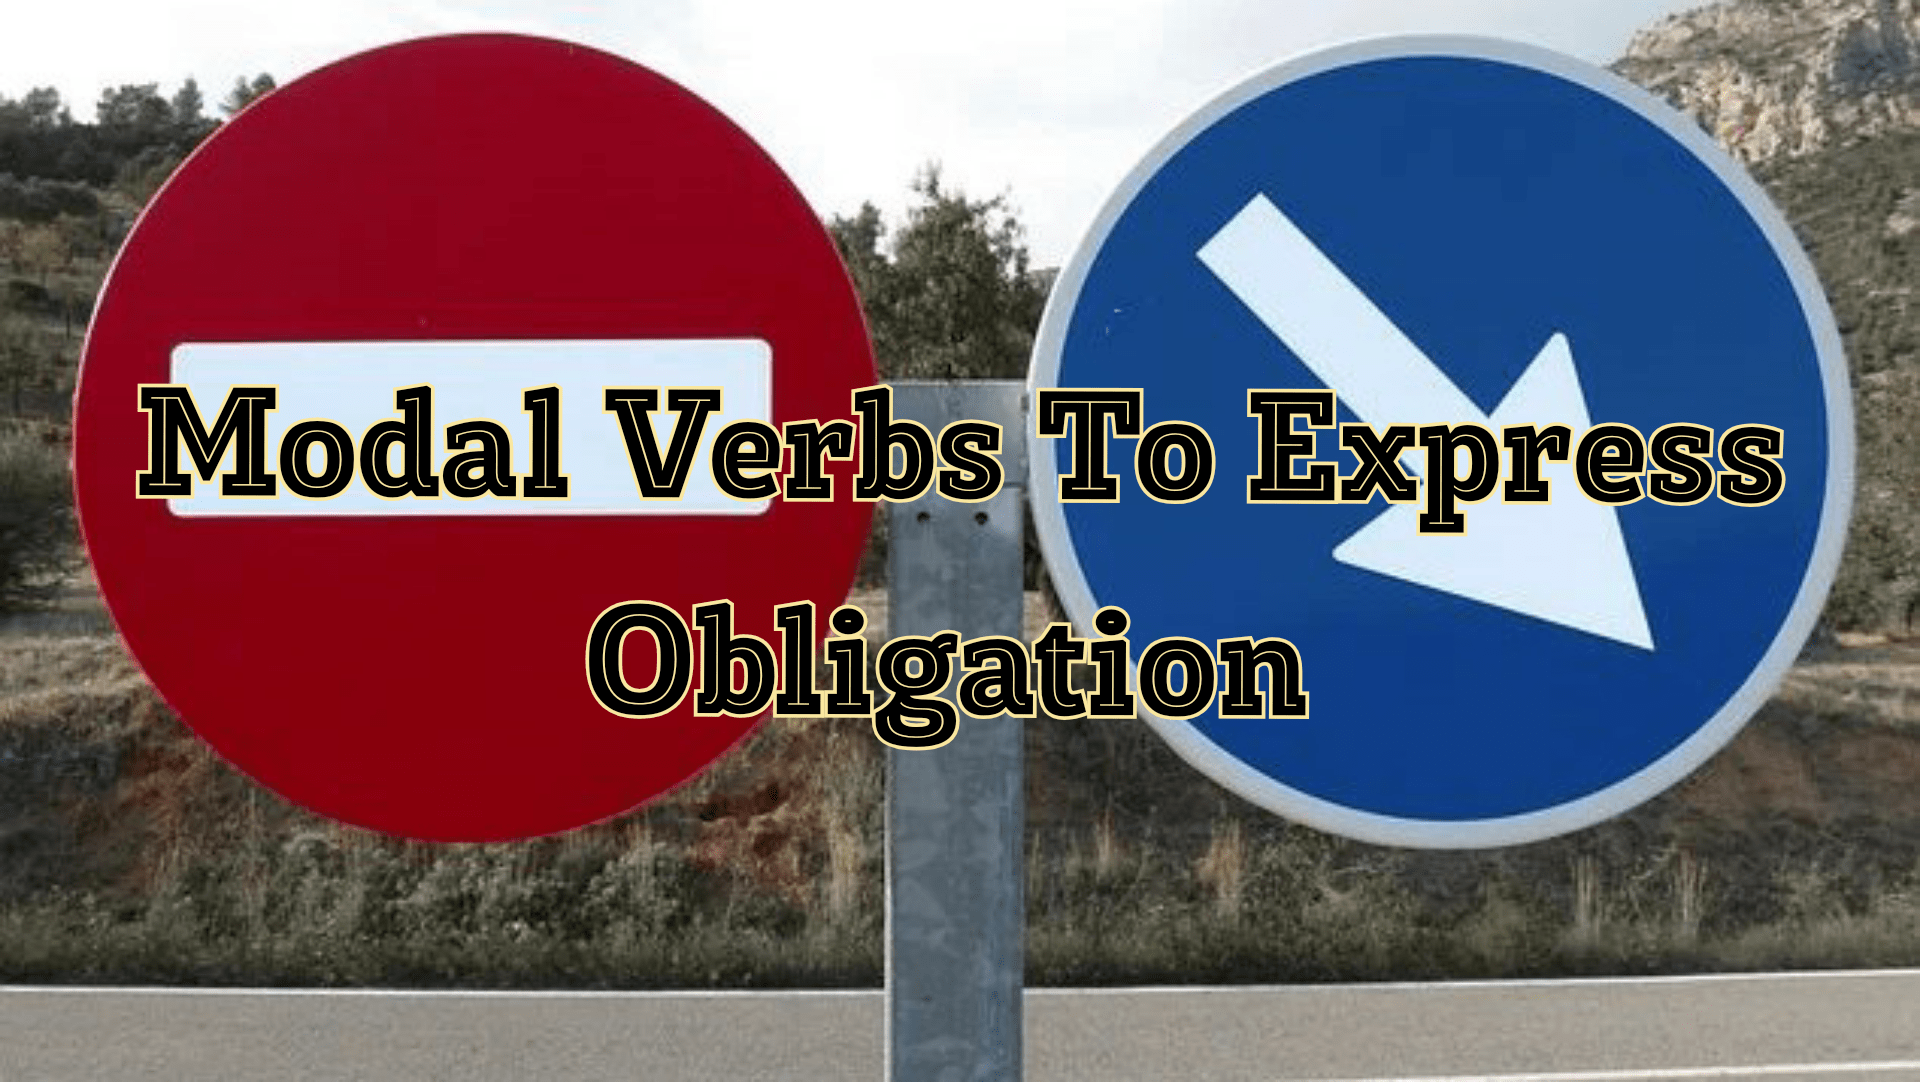 Modal verbs (and other verbs) to express Obligation 2